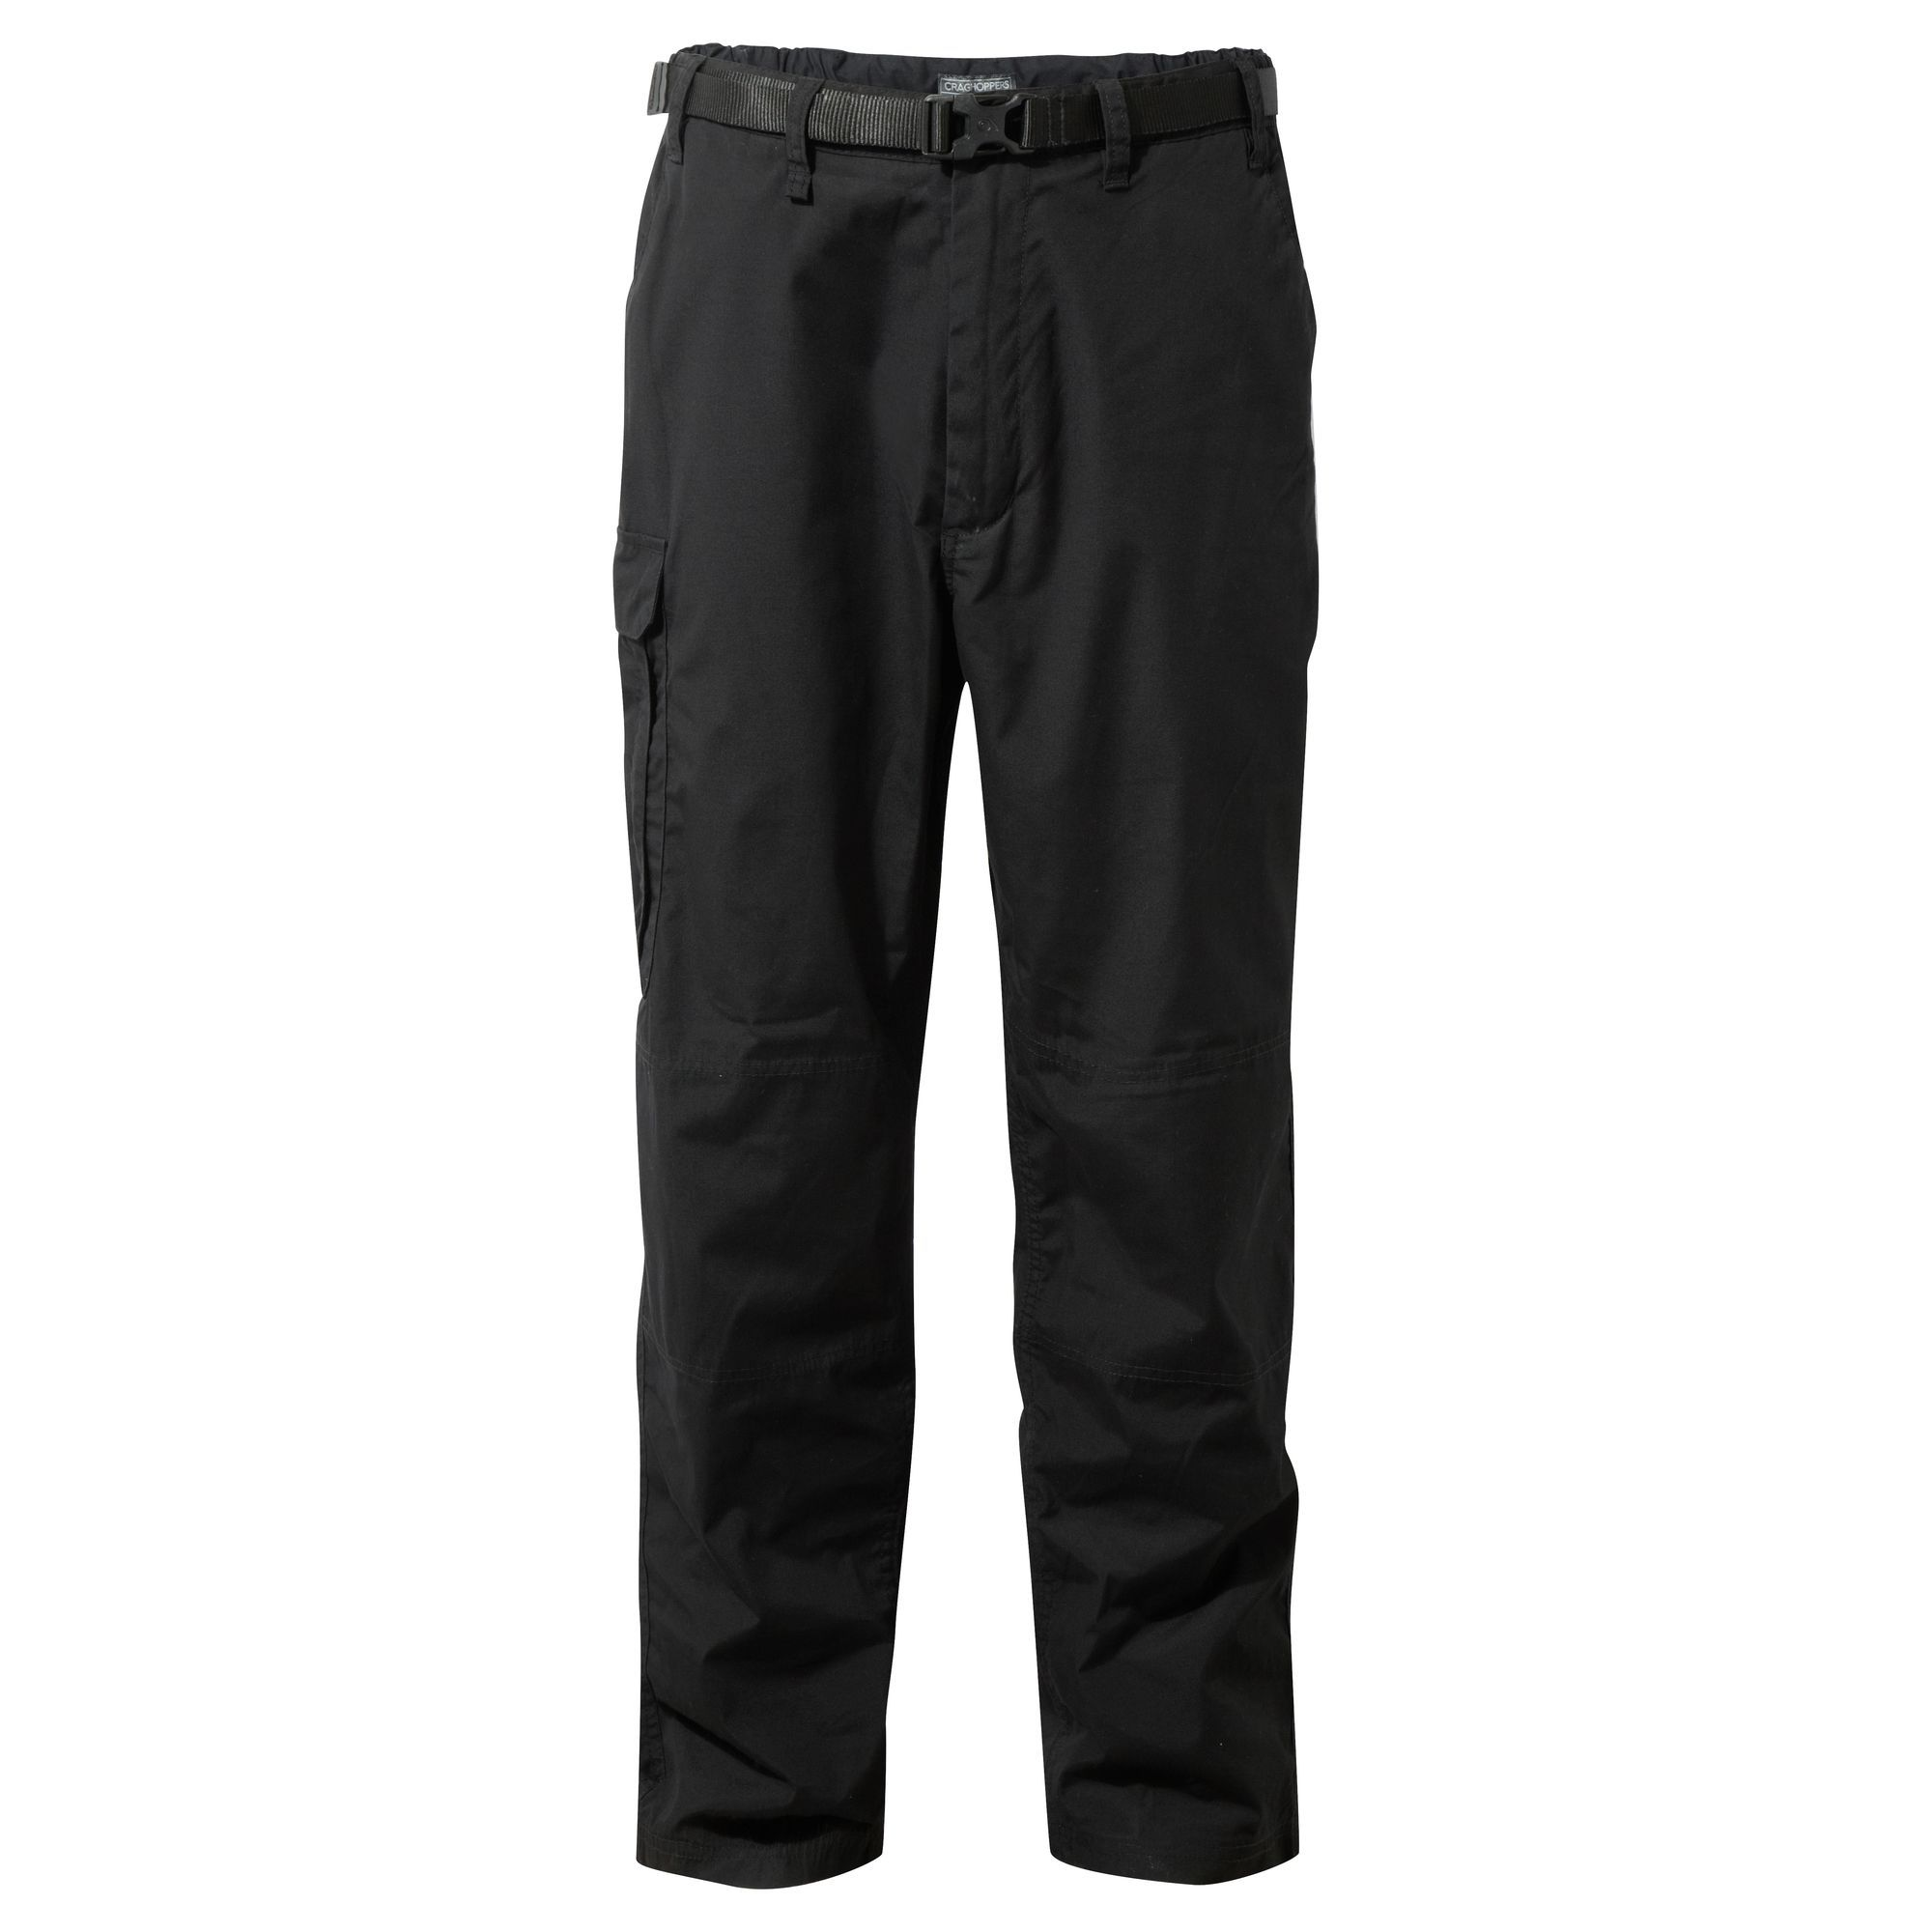 Craghoppers-Mens-Classic-Kiwi-Walking-Hiking-Golf-Outdoor-Trousers-RRP-50 thumbnail 9